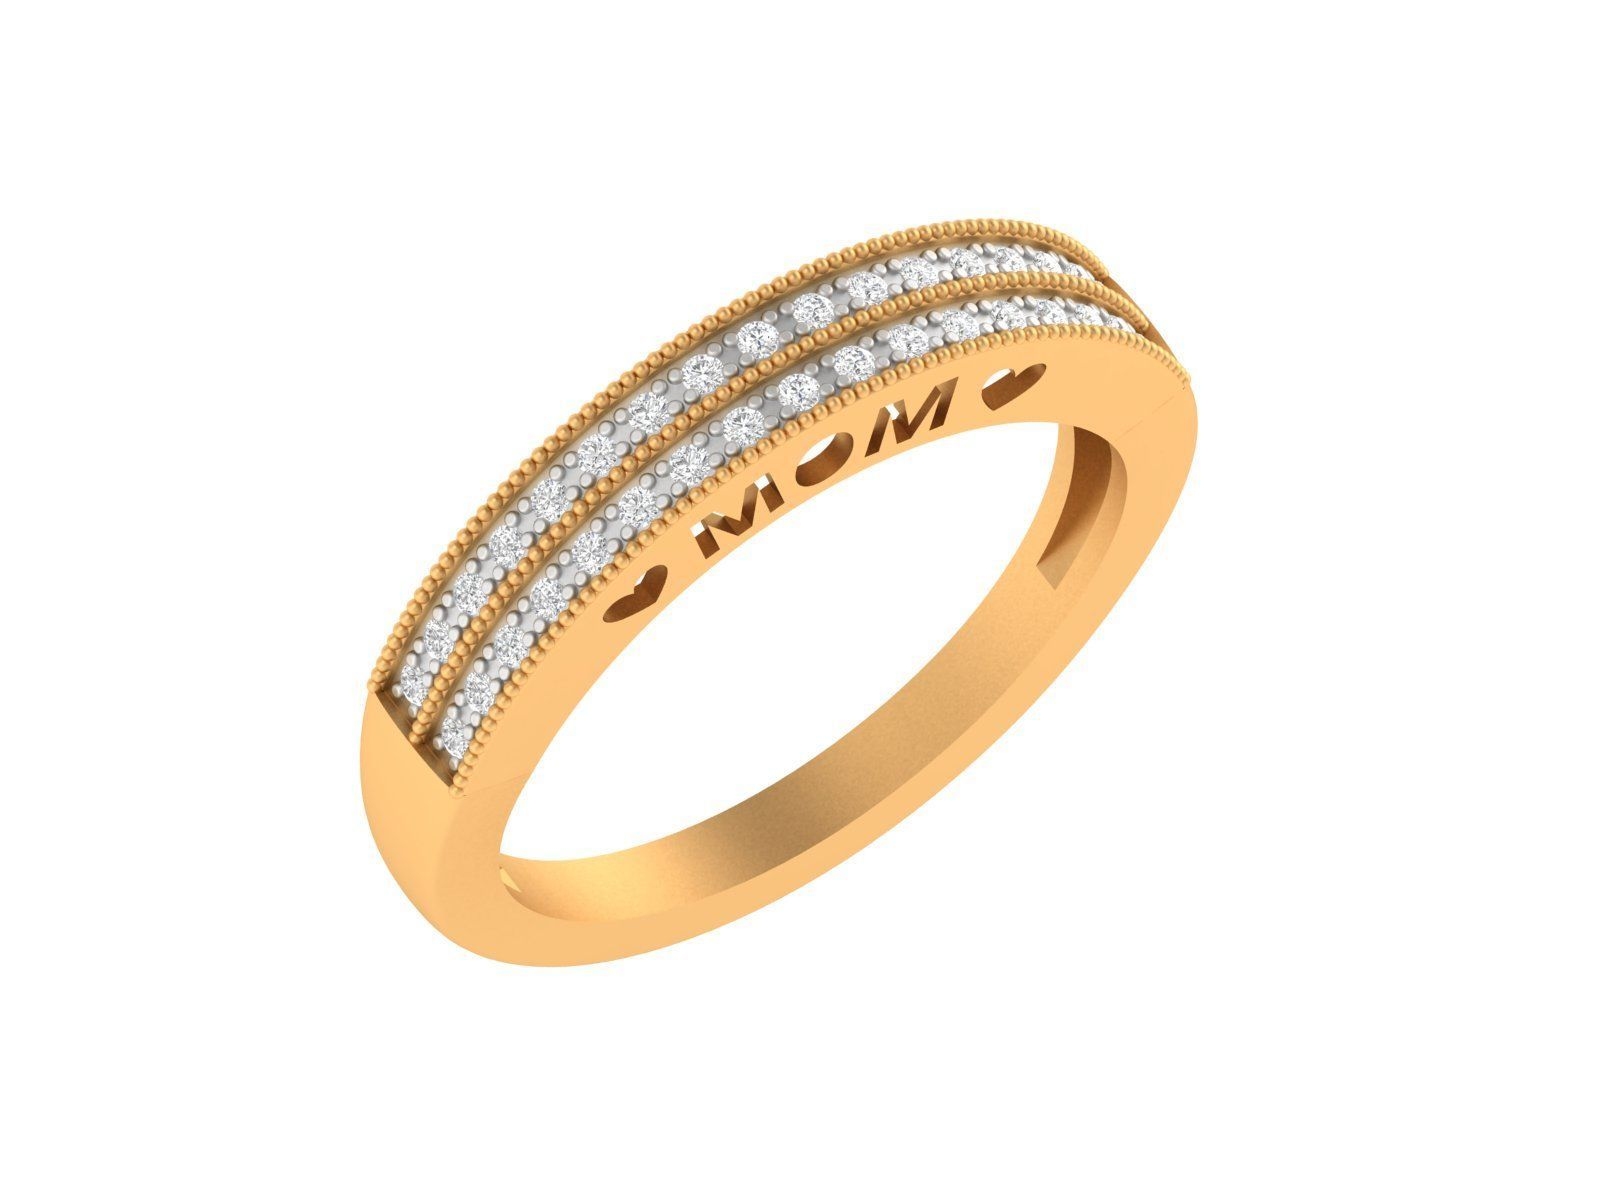 0.18ct Certified Untreated Diamond 14k Yellow gold Band Ring Jewelry